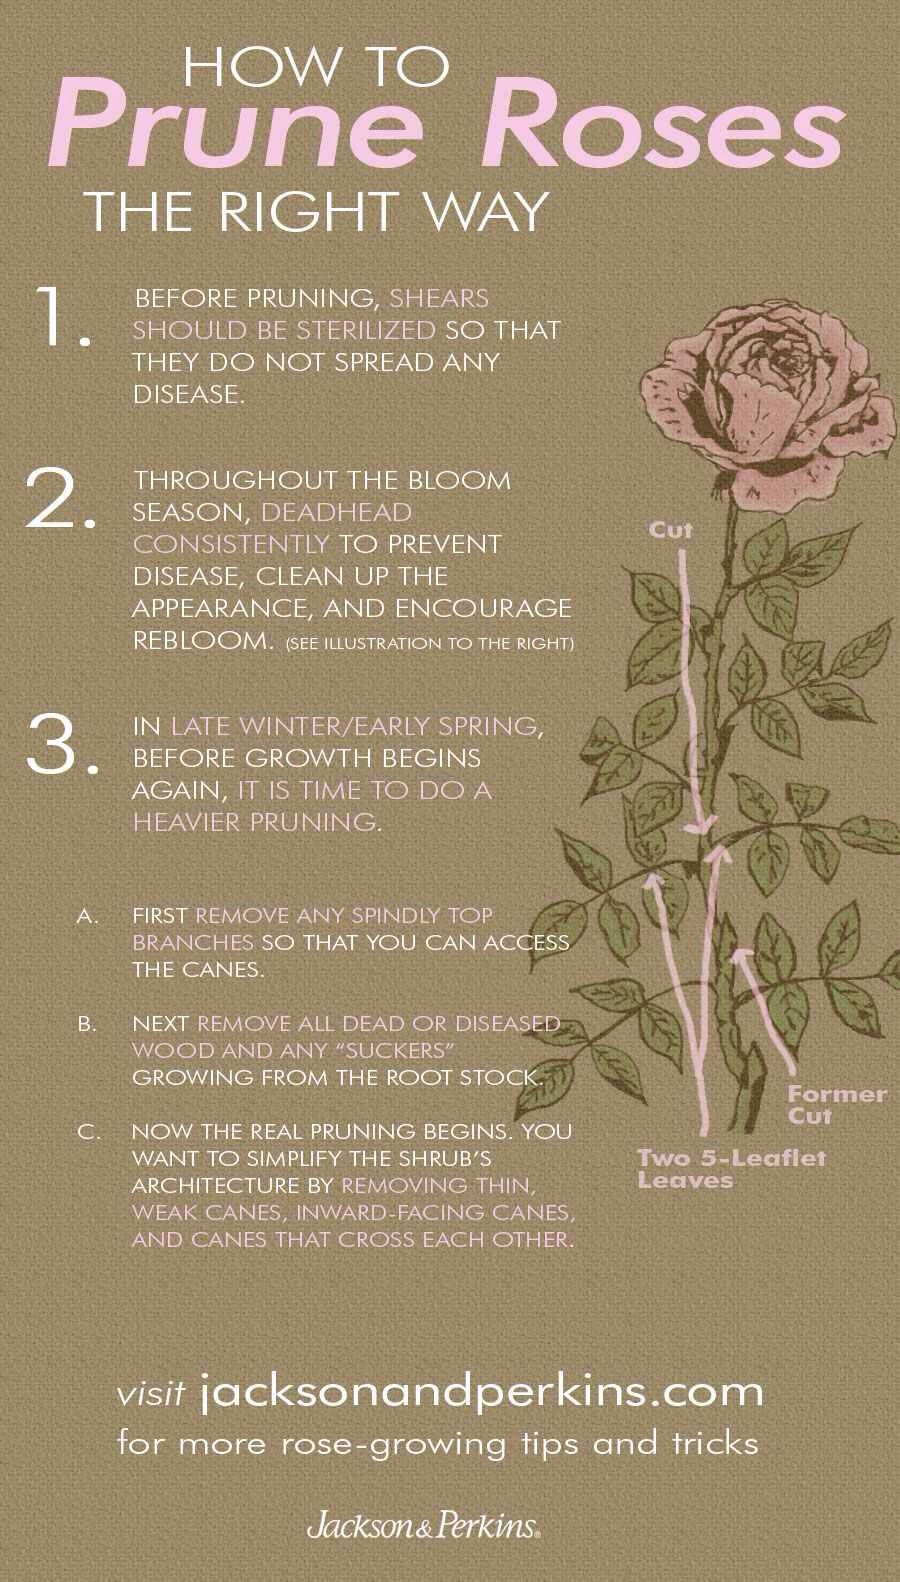 How to prune roses the right way Gardening tips flowers Rose